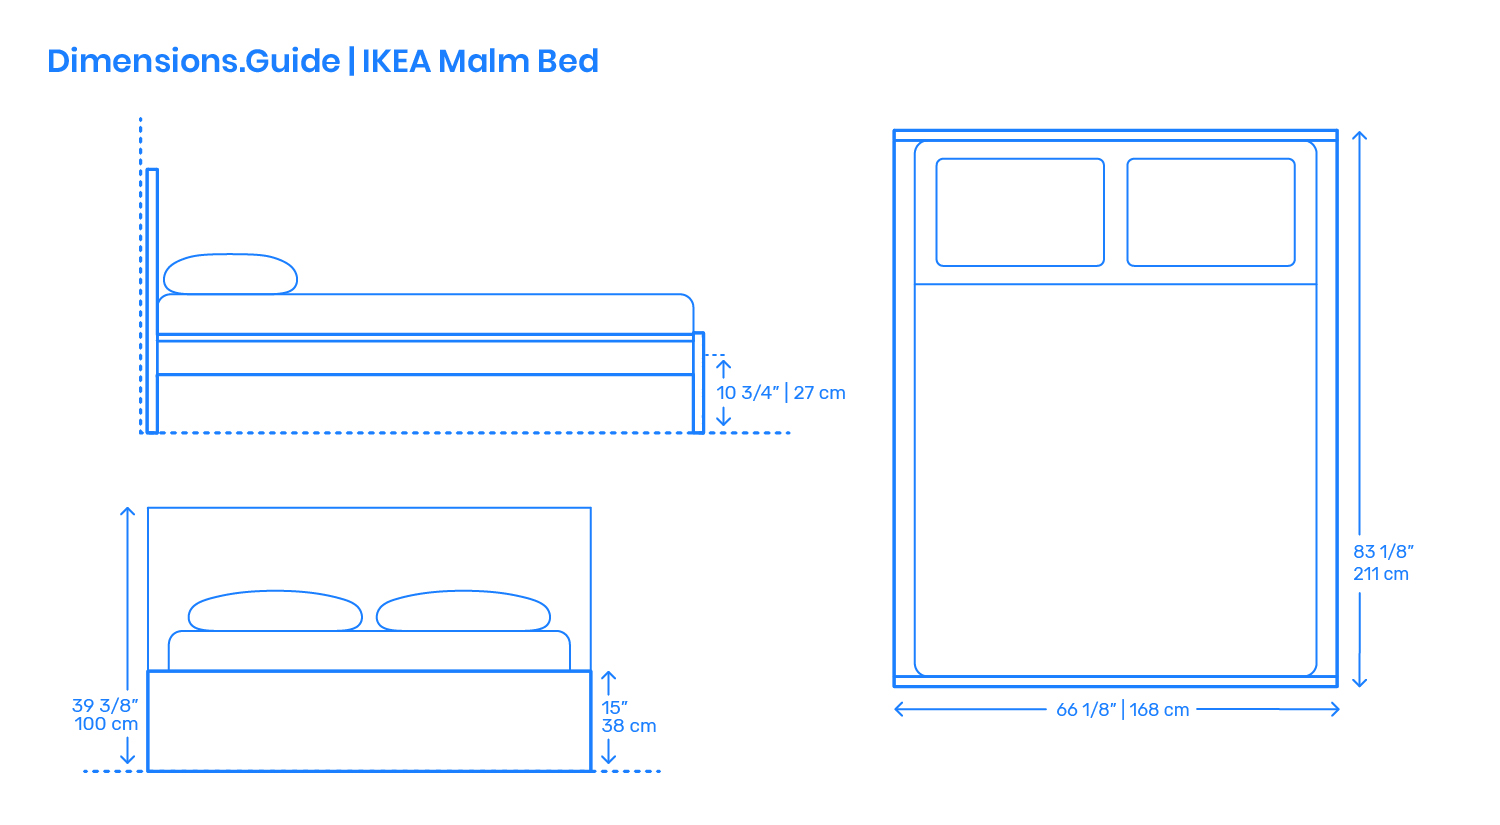 Dimensions Lit Double Ikea Malm Bed Frame Dimensions Drawings Dimensions Guide